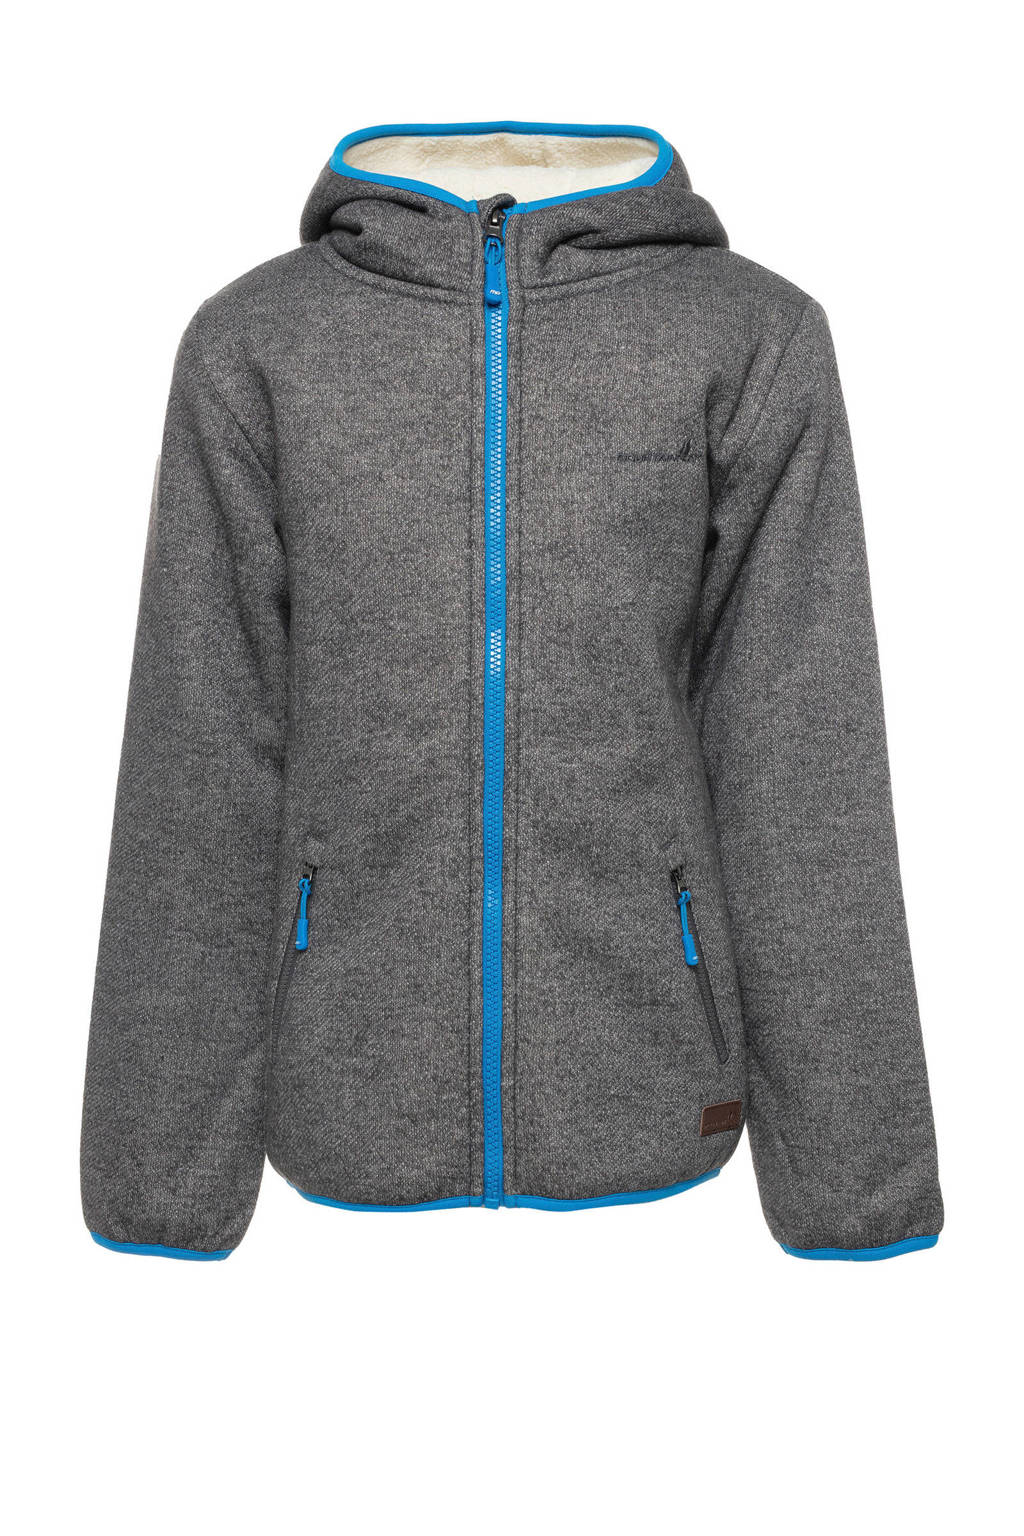 Scapino Mountain Peak fleece vest grijs melange, Grijs